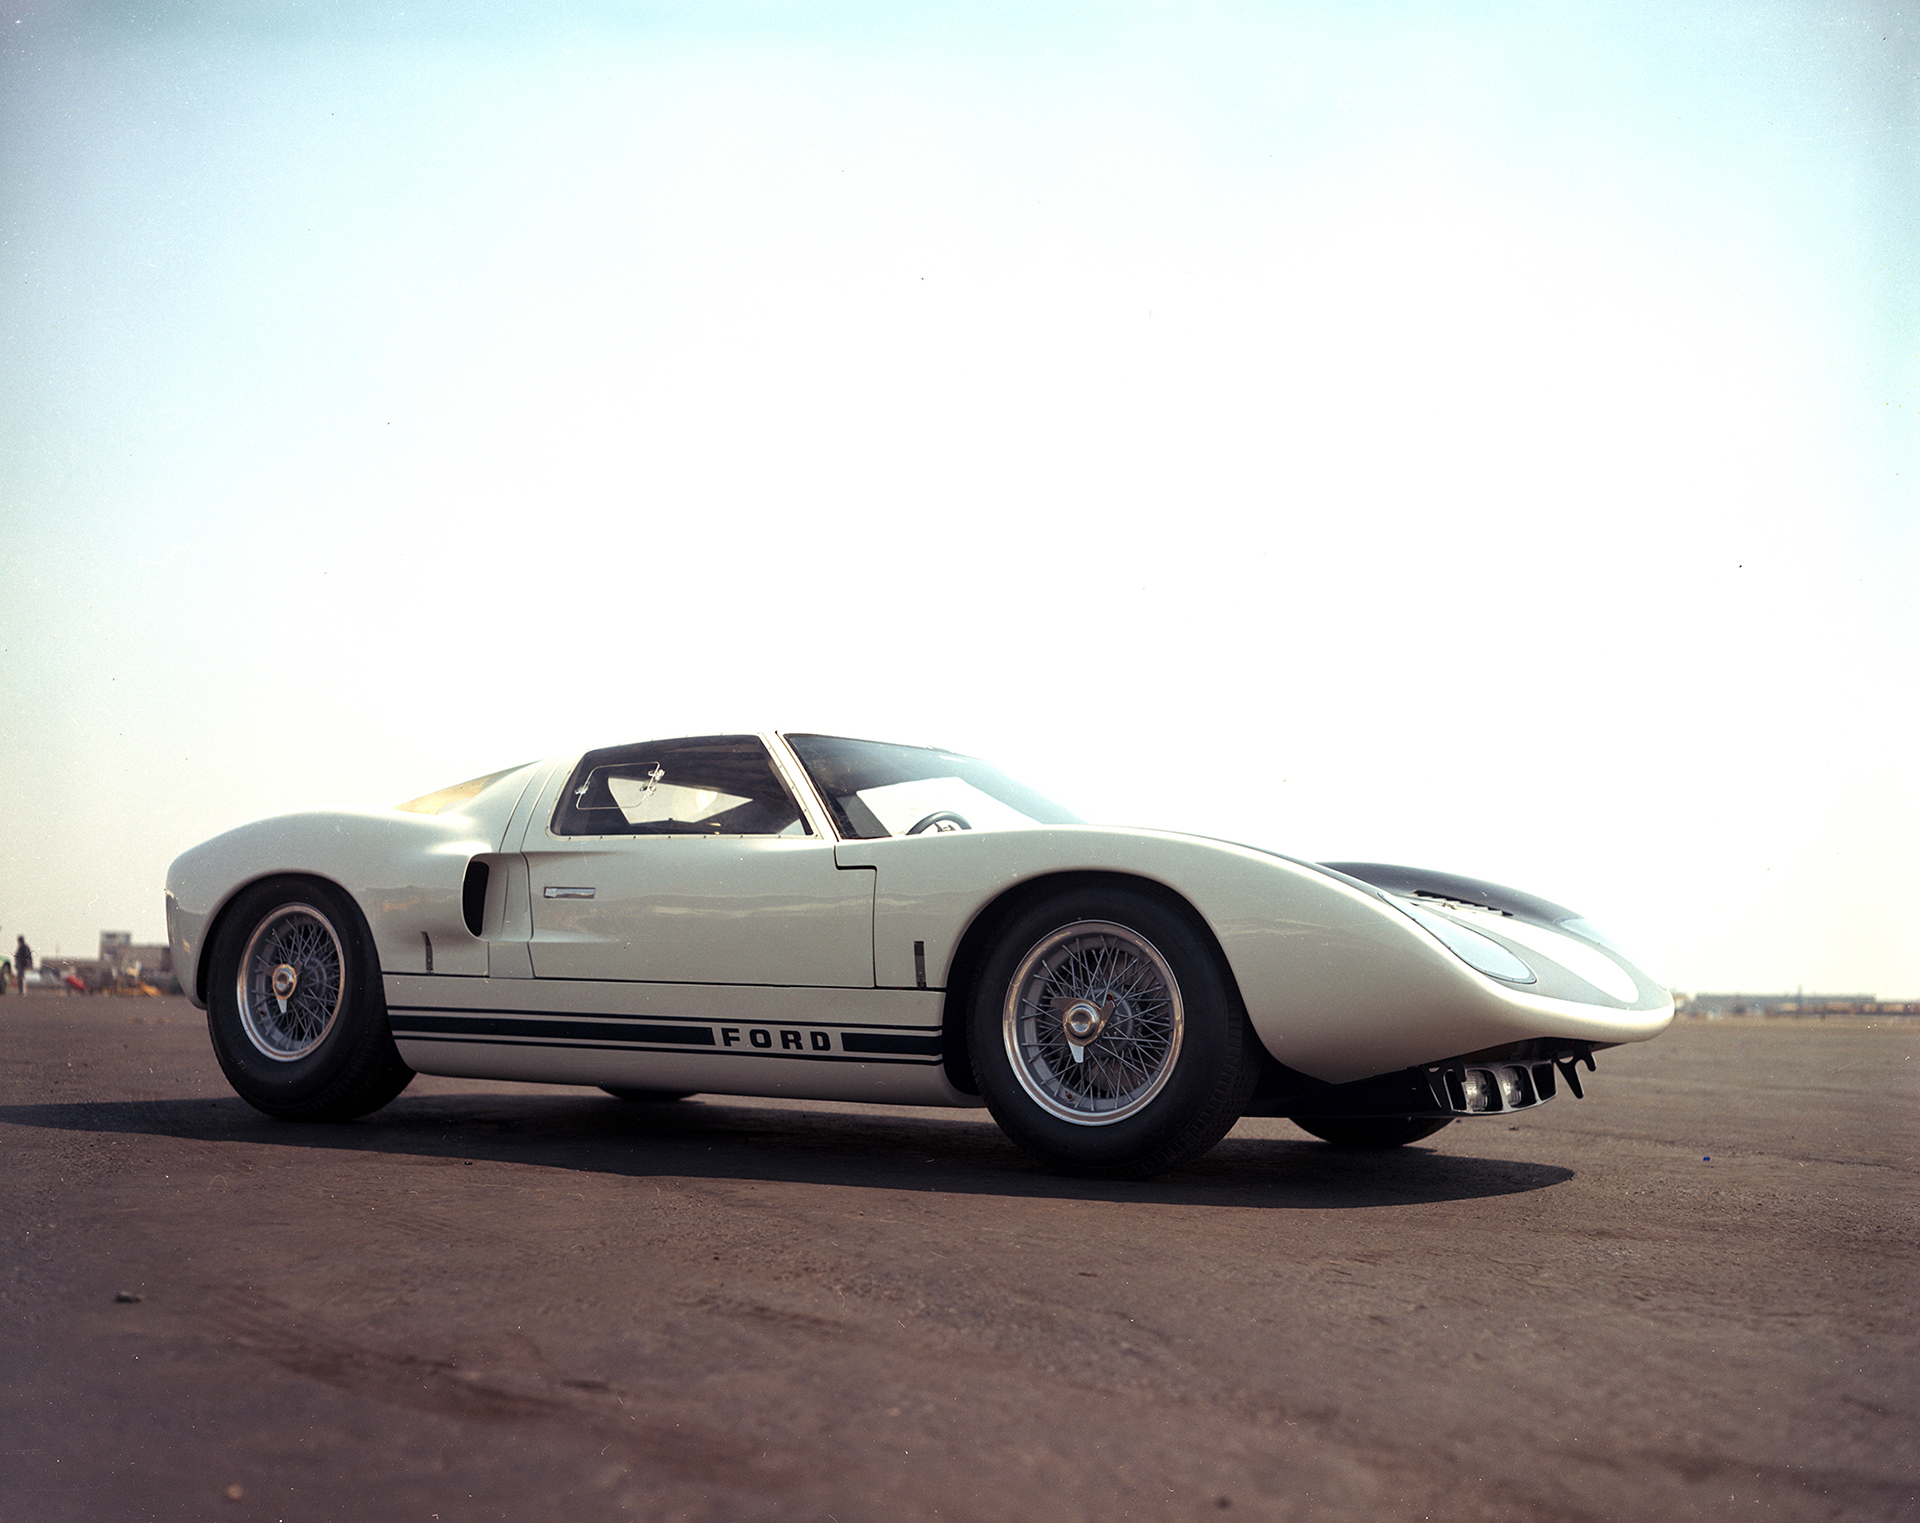 Ford GT - 1964 - prototype